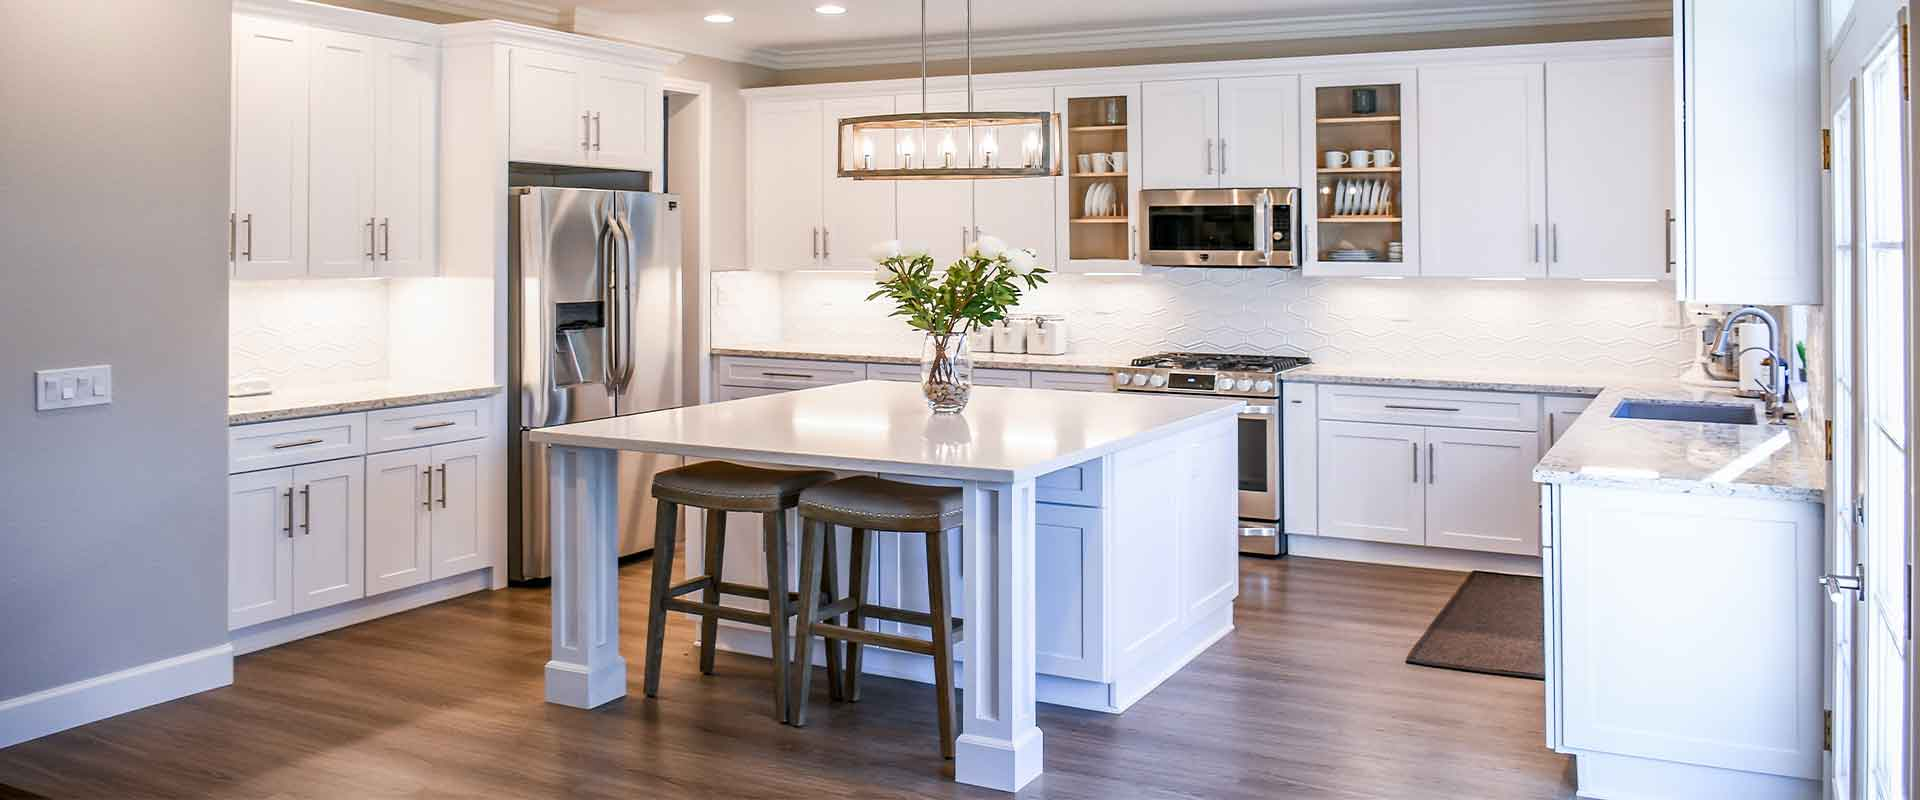 Classic-which-kitchen-with-island